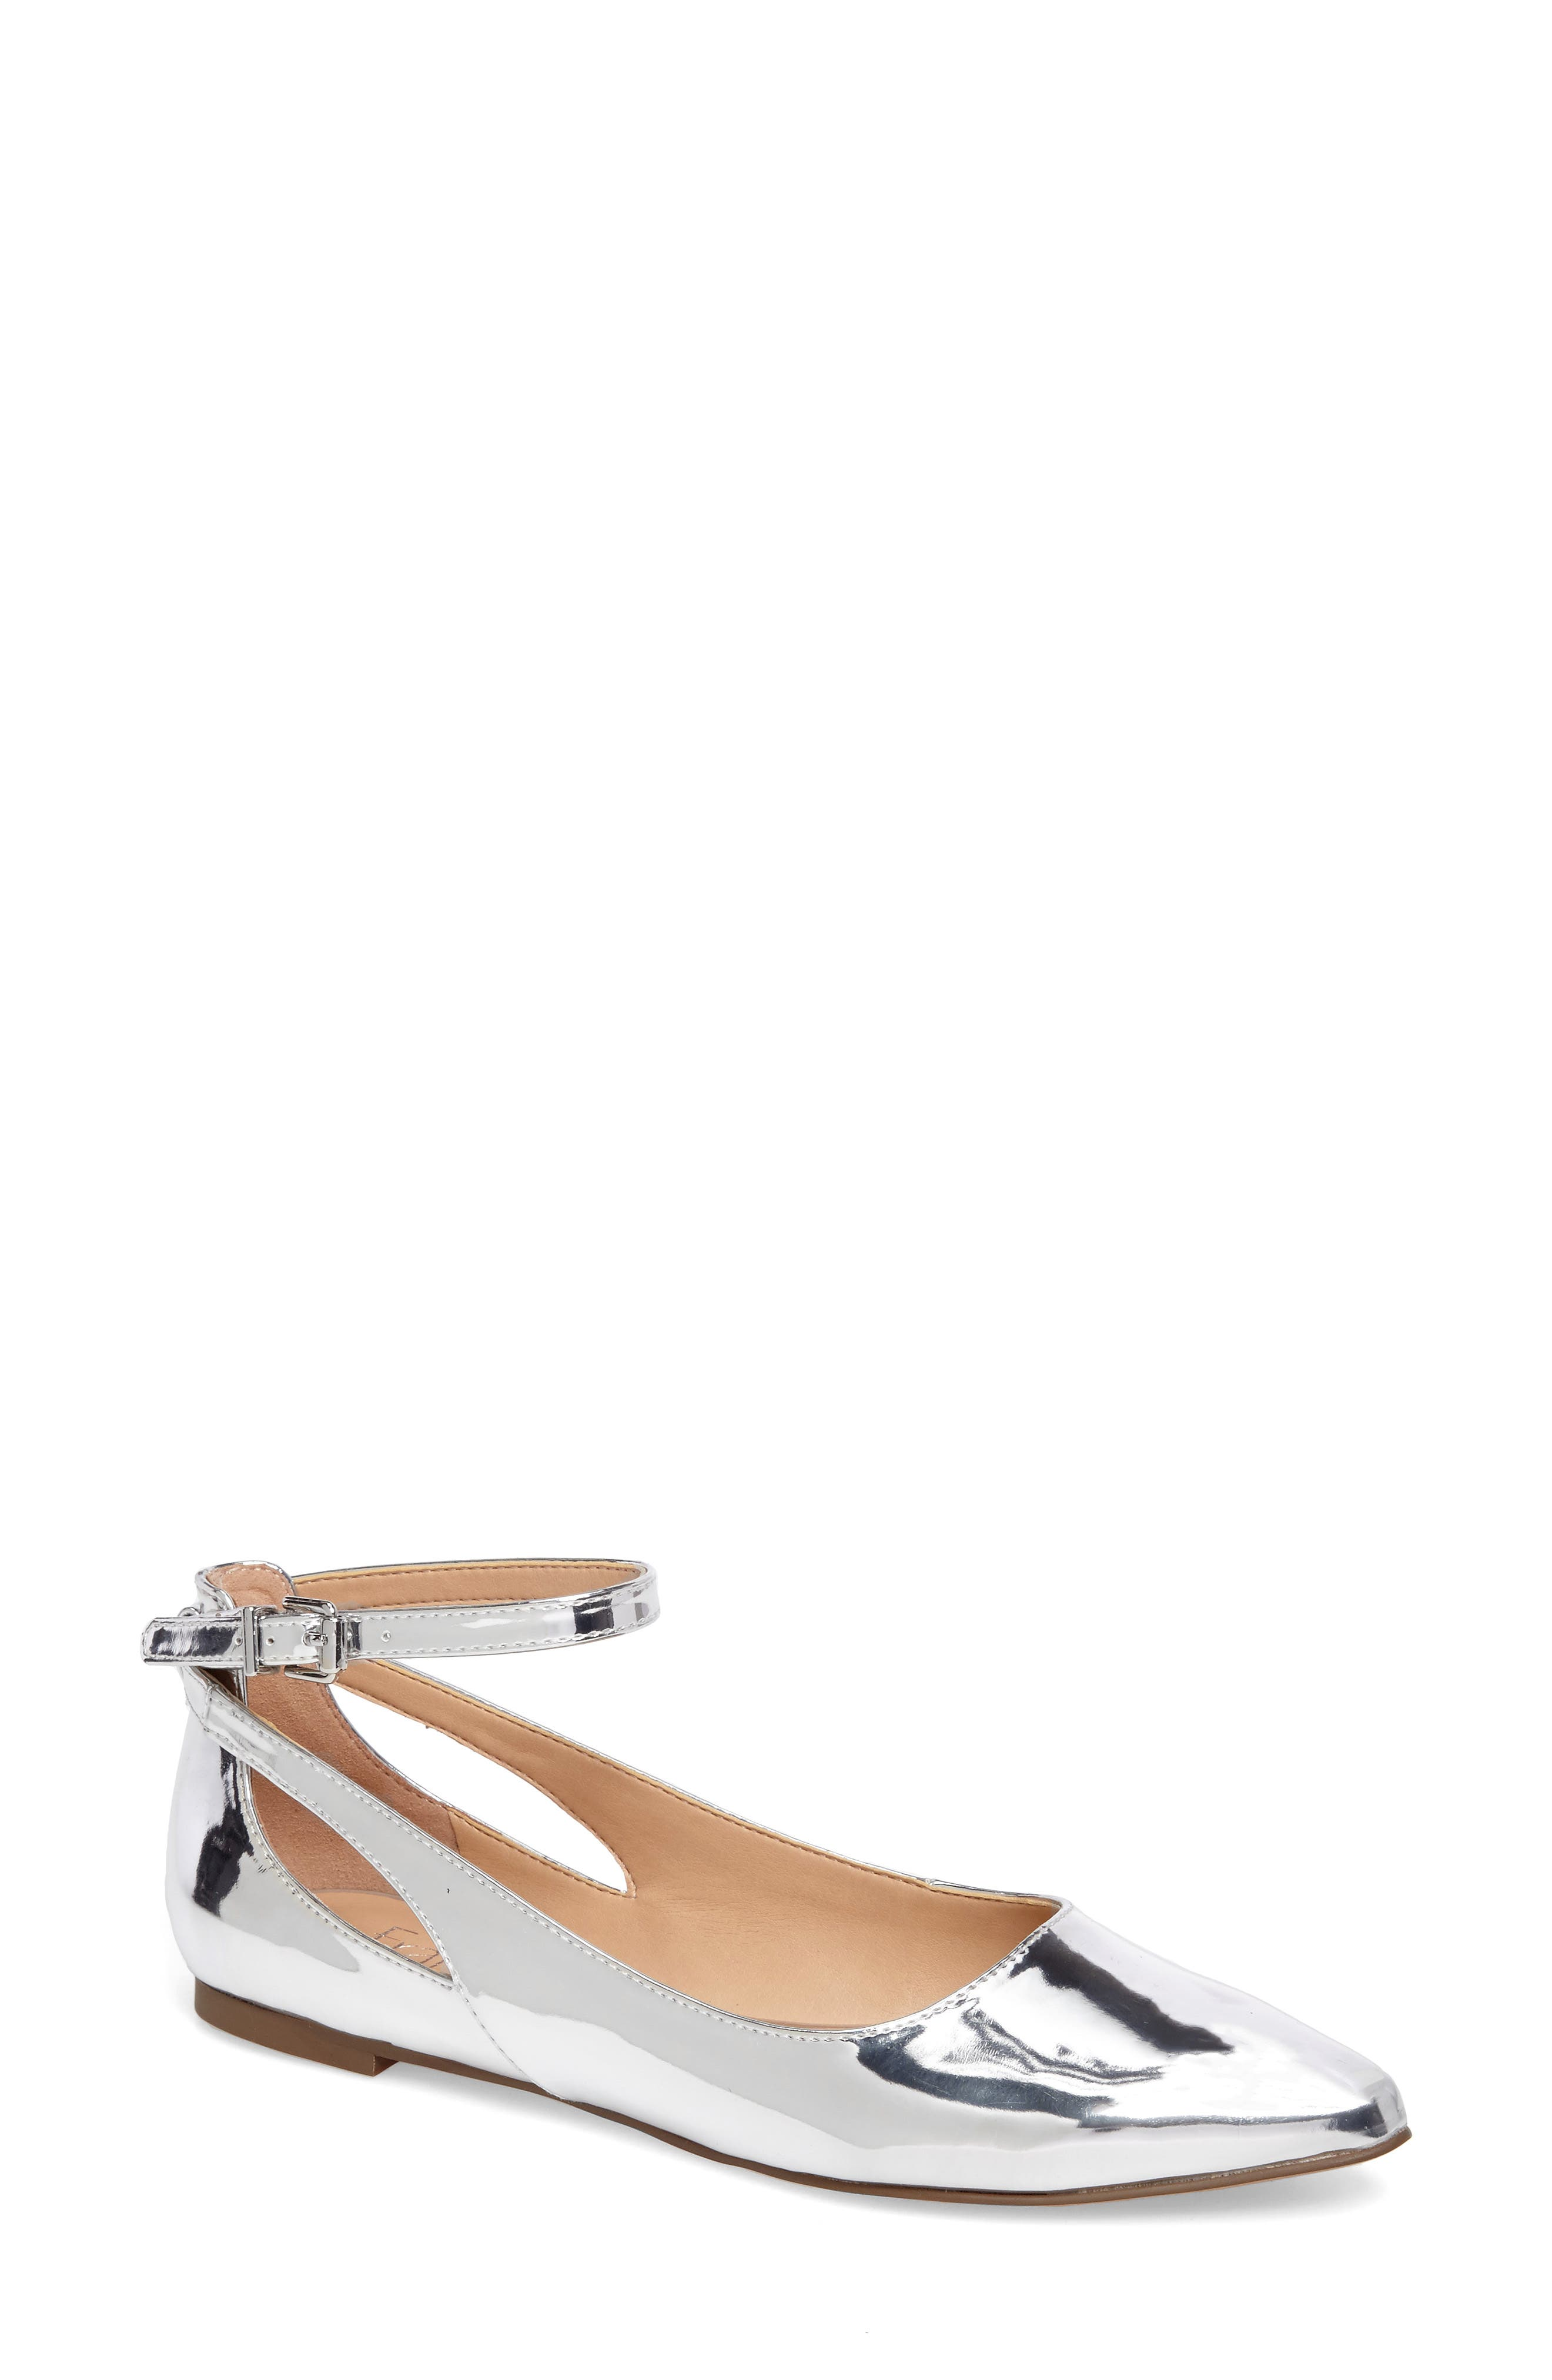 Sylvia Ankle Strap Flat,                         Main,                         color, 040